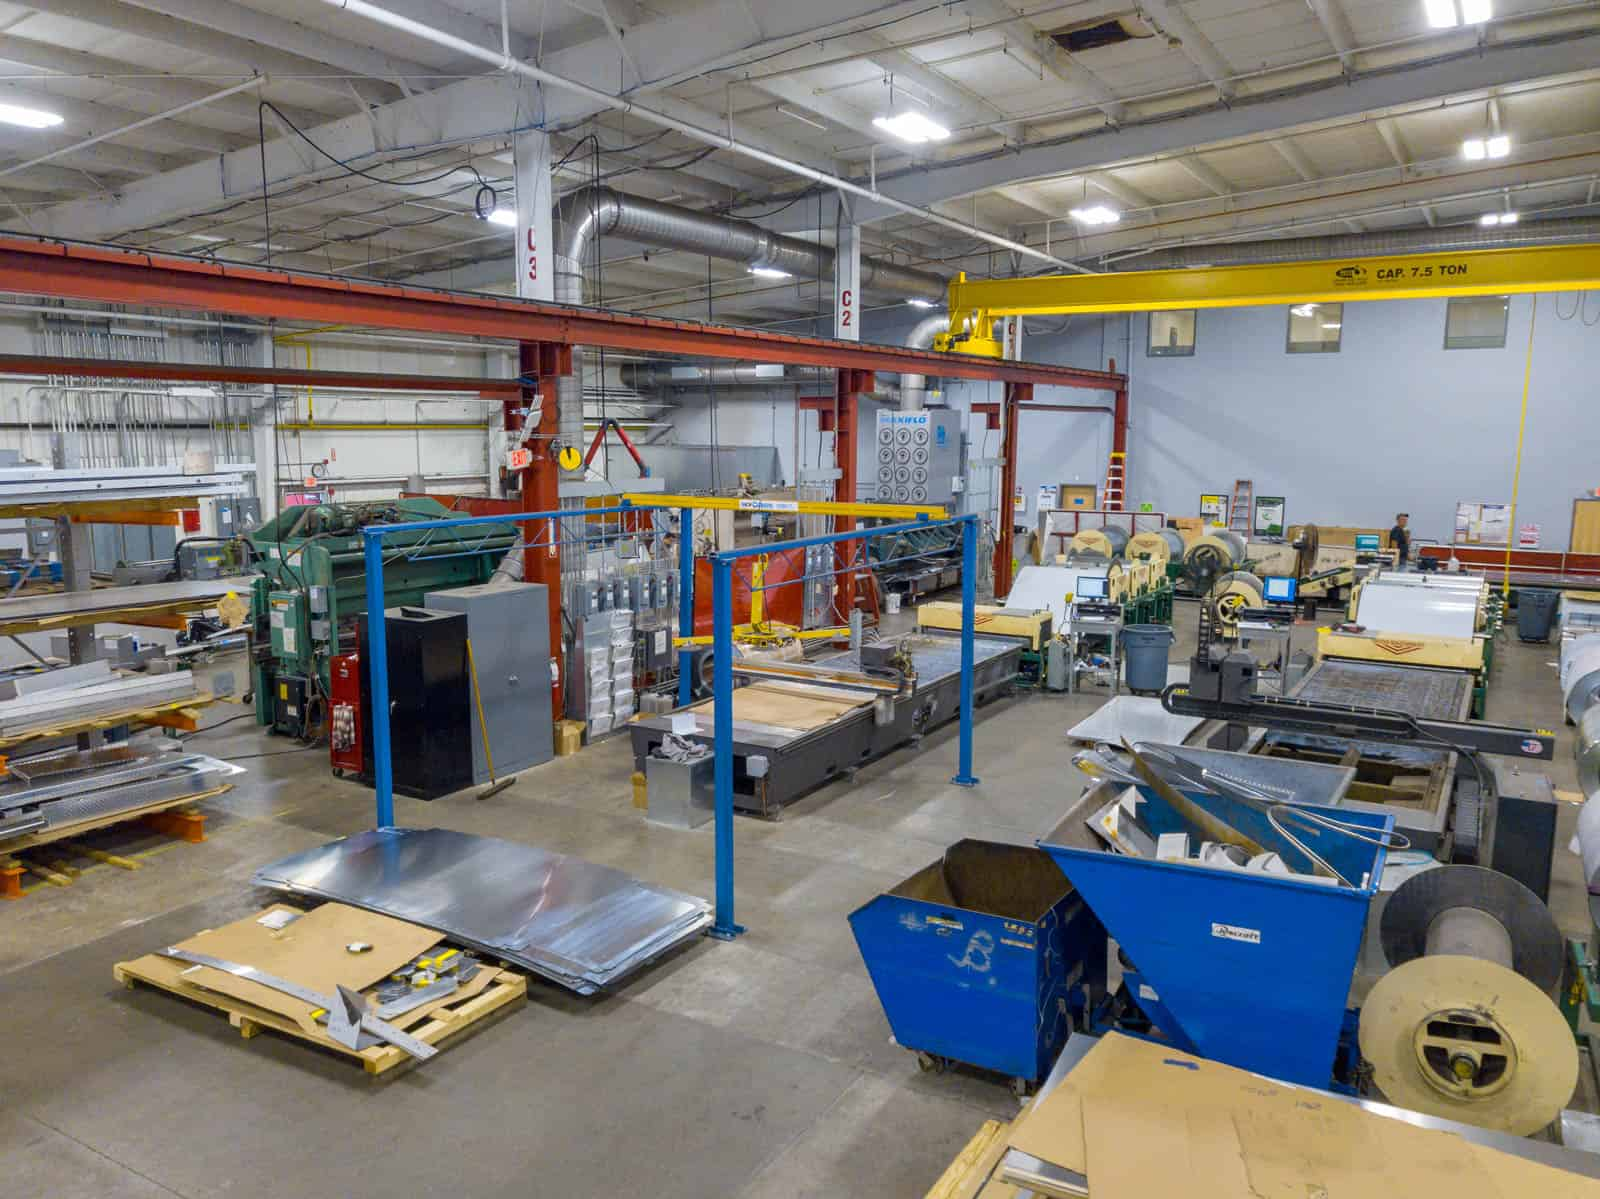 interior drone photo of HVAC manufacturing shop inside building in Randolph, Massachusetts